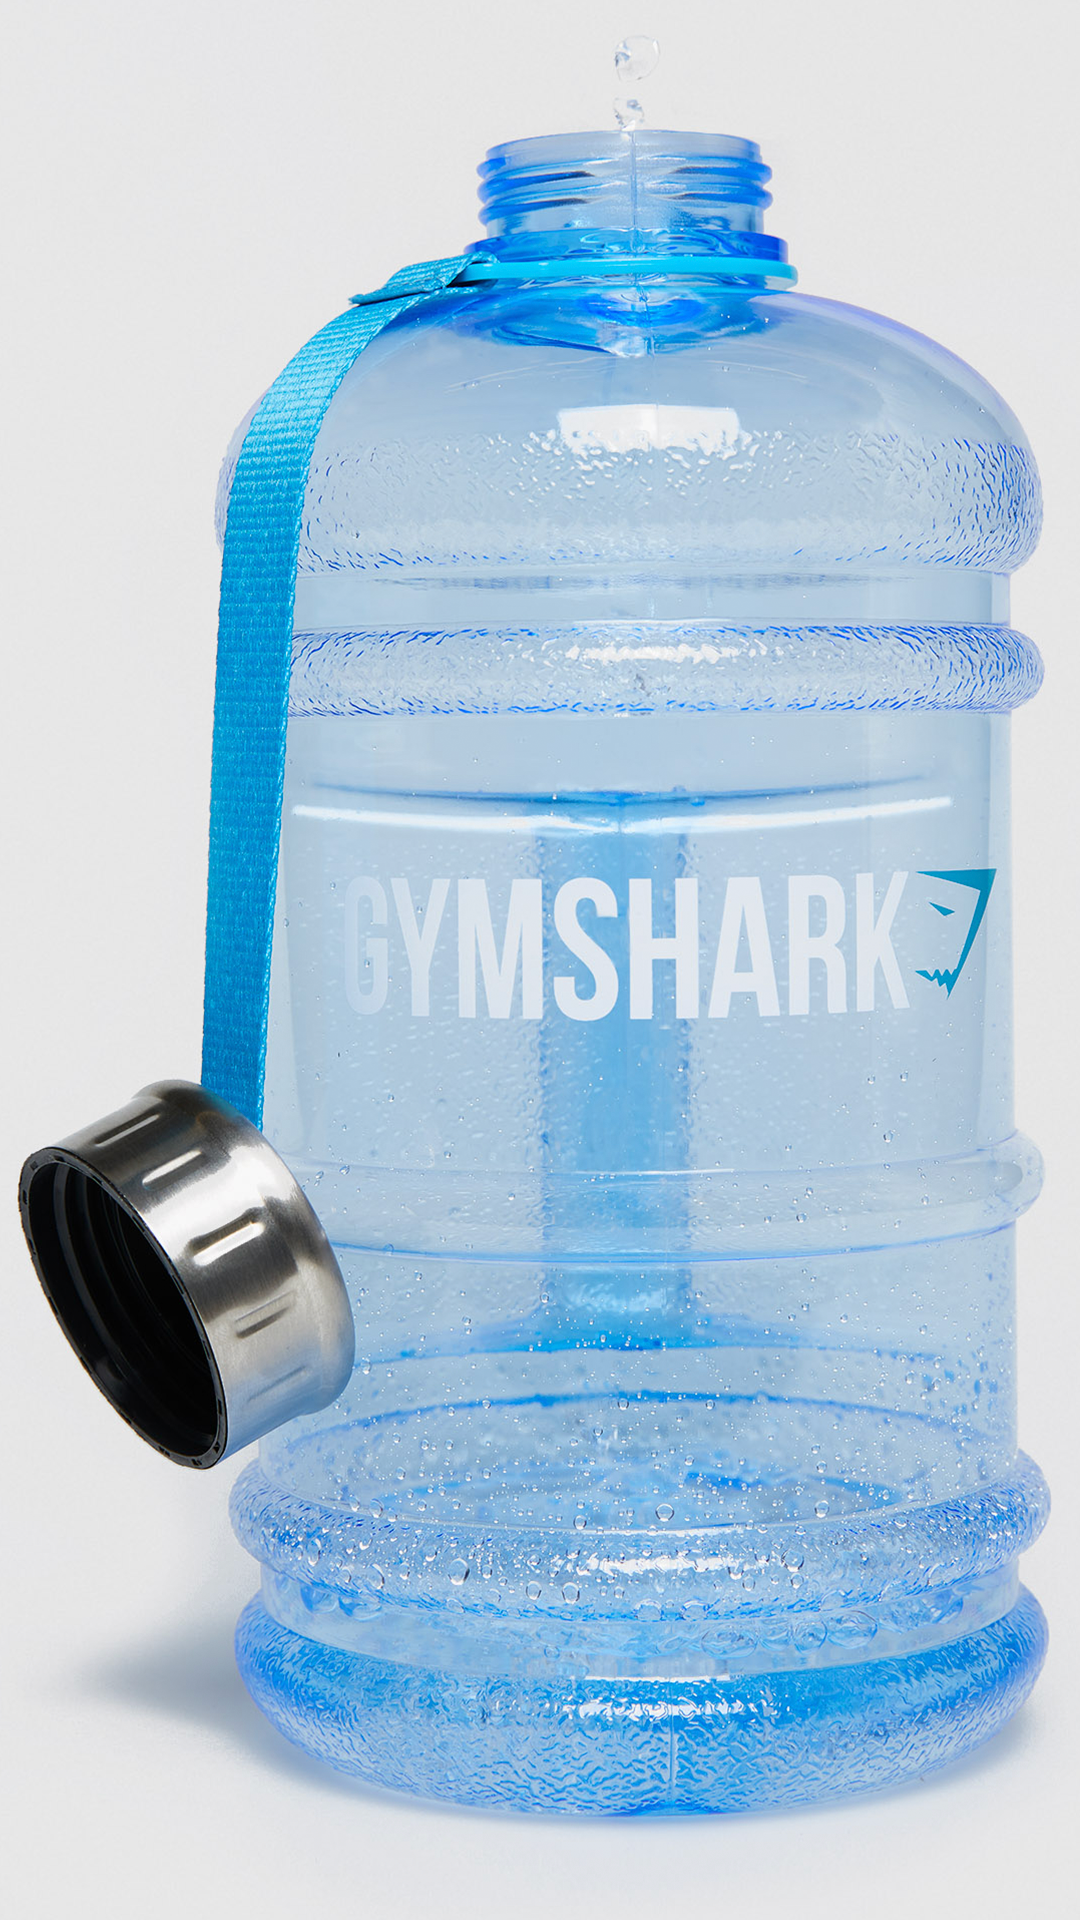 2 2 Litre Waterbottle Bpaa And Dehp Free With An Easy To Hold Handle And Stainless Steel Screw Cap With Gymshark Harnes Gym Accessories Gymshark Workout Gear